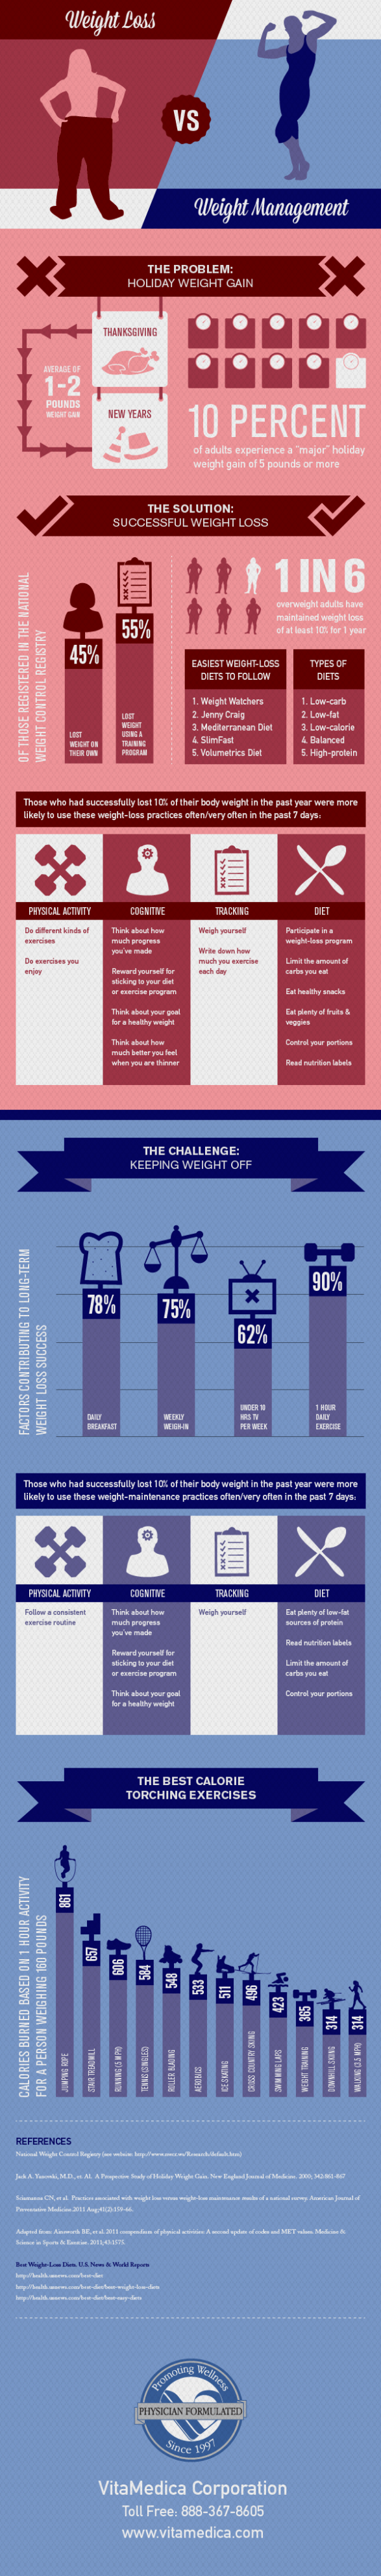 Weight Loss versus Weight Management